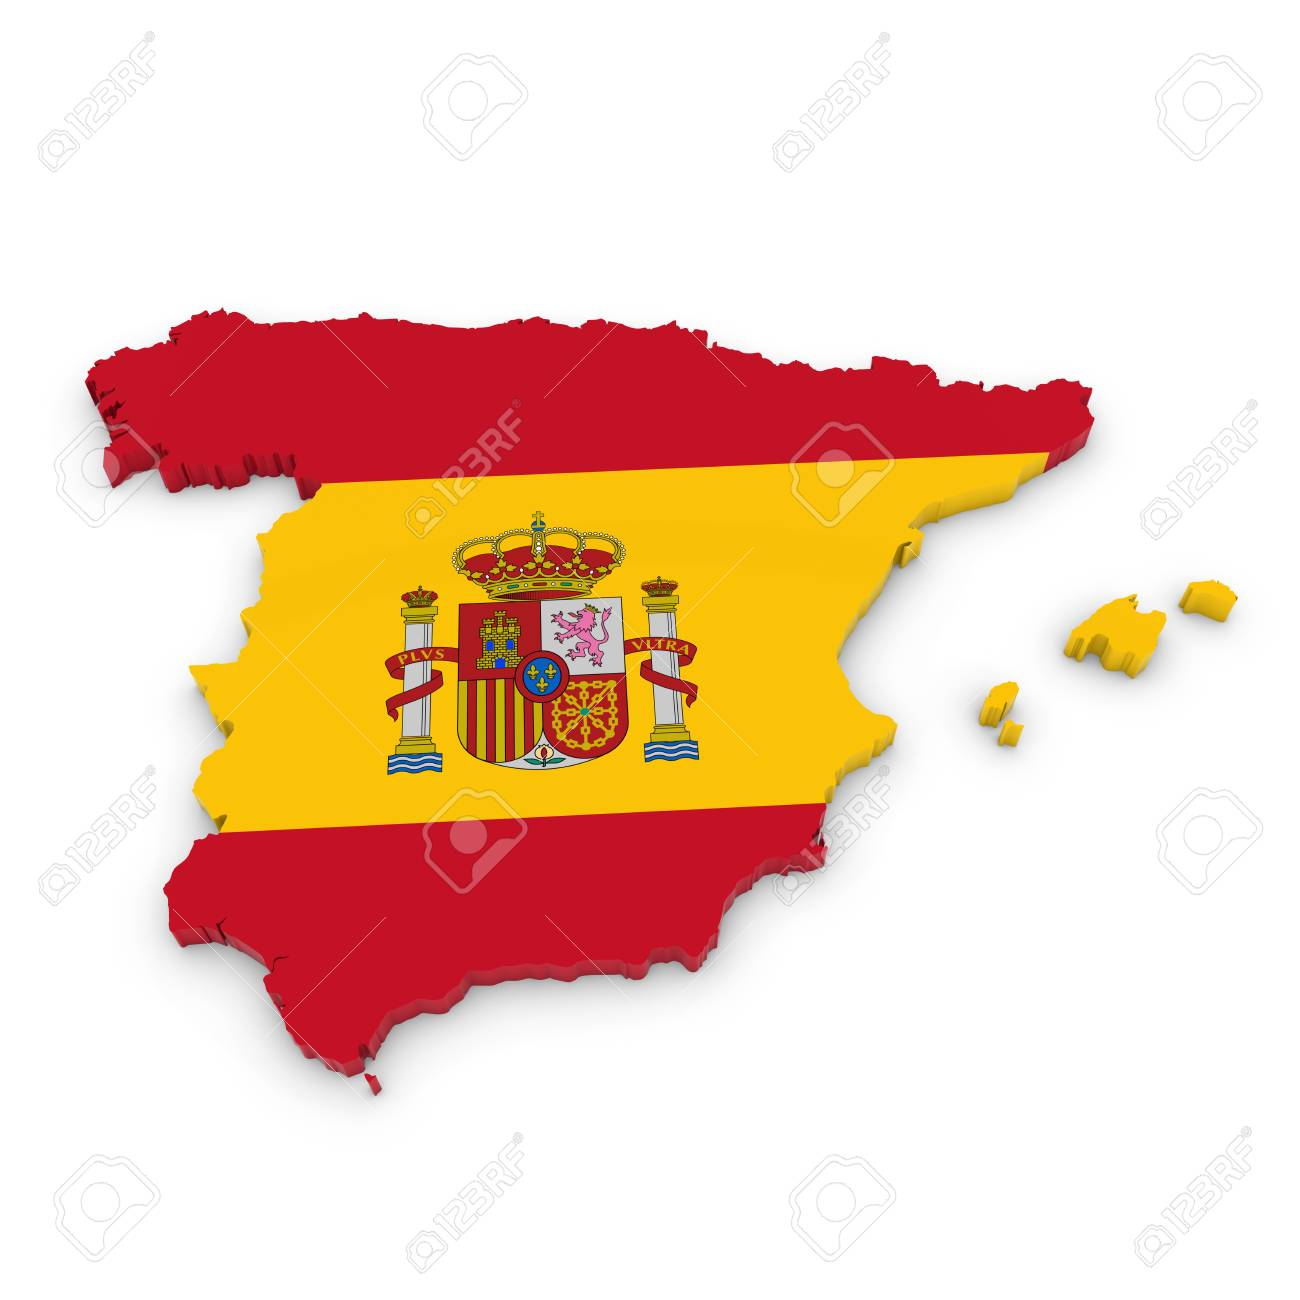 3d Outline Of Spain Textured With The Spanish Flag Stock Photo Picture And Royalty Free Image Image 46393354